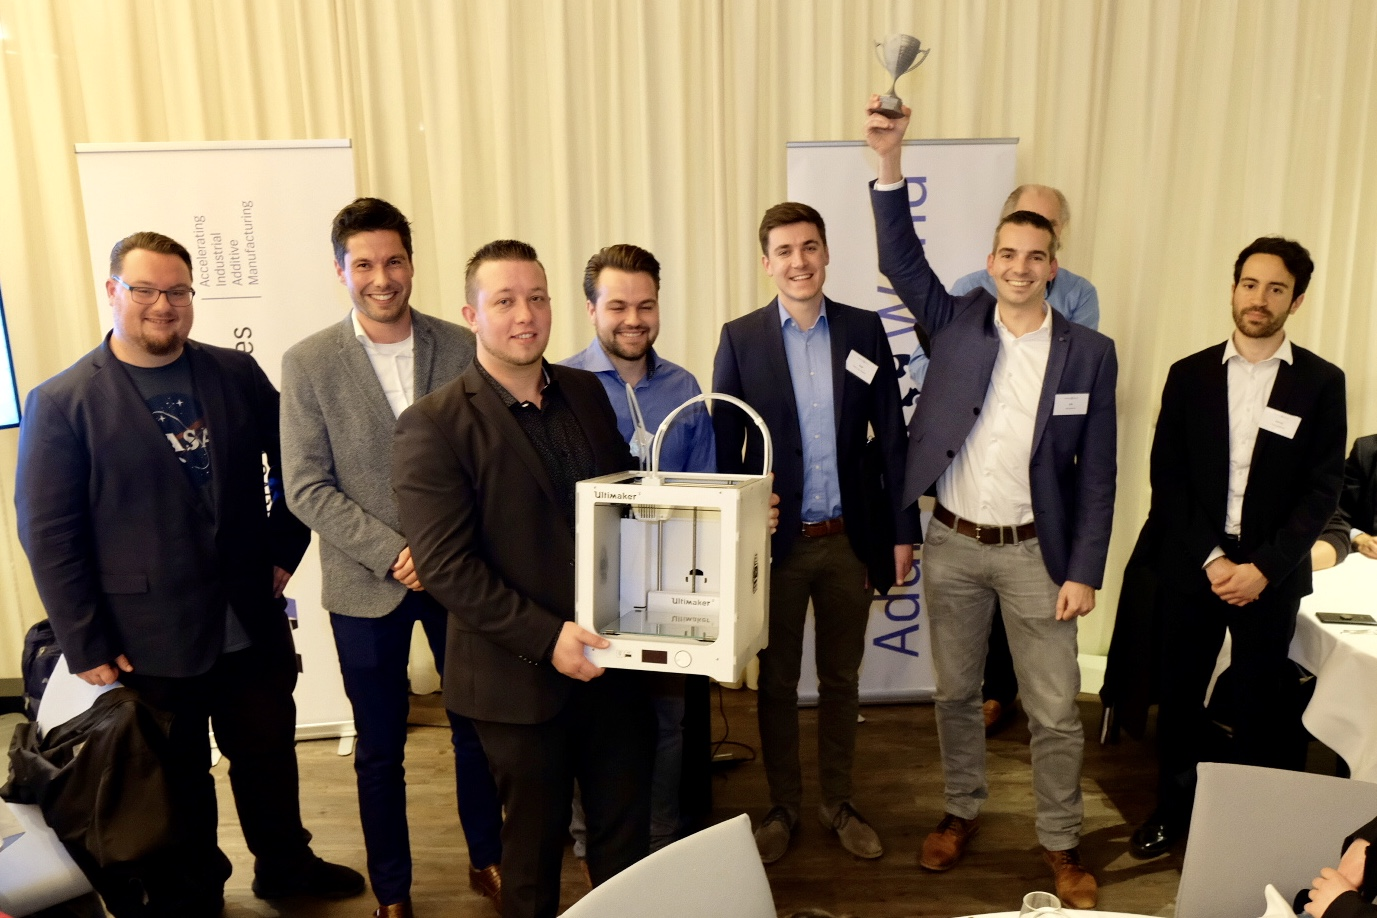 Steven van de Staak, Content Marketing Specialist at Ultimaker, with the winners of 7th edition of the Additive World Conference in Eindhoven, the Netherlands. Photo via Additive Industries.